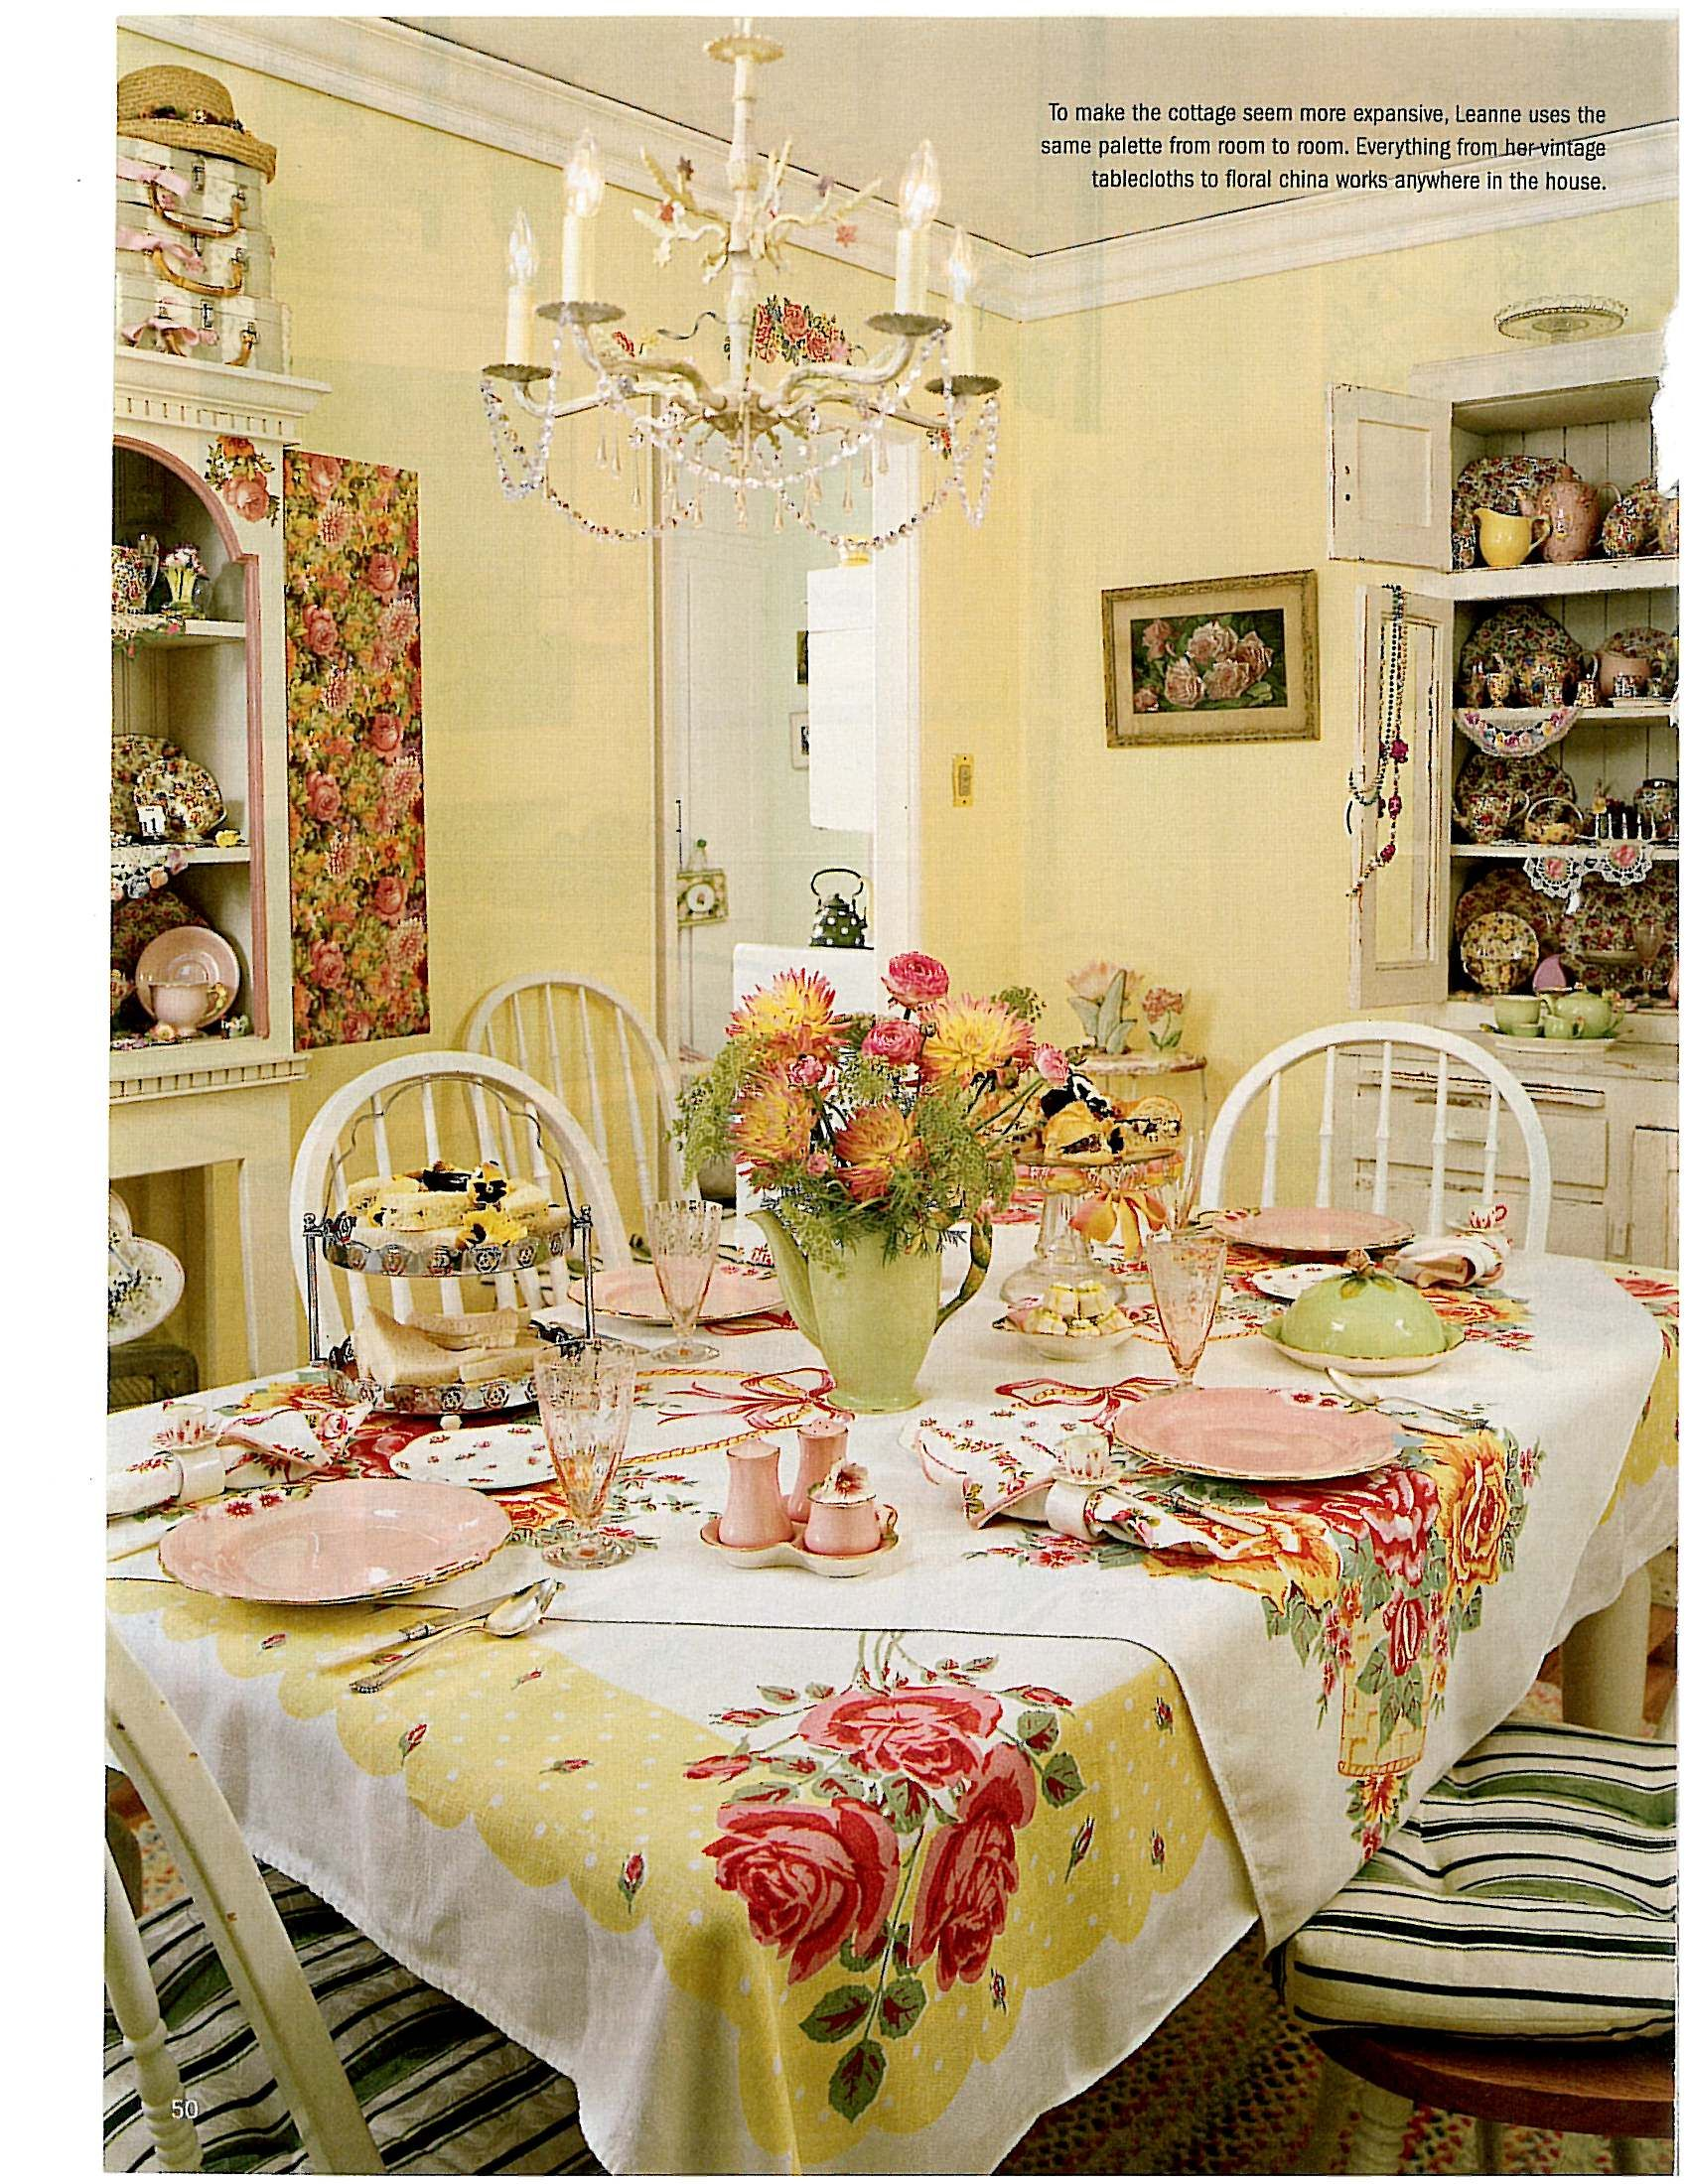 The Vintage Tablecloths Layered Are Clever Add A Lot Of Color Personality Cheerful Room